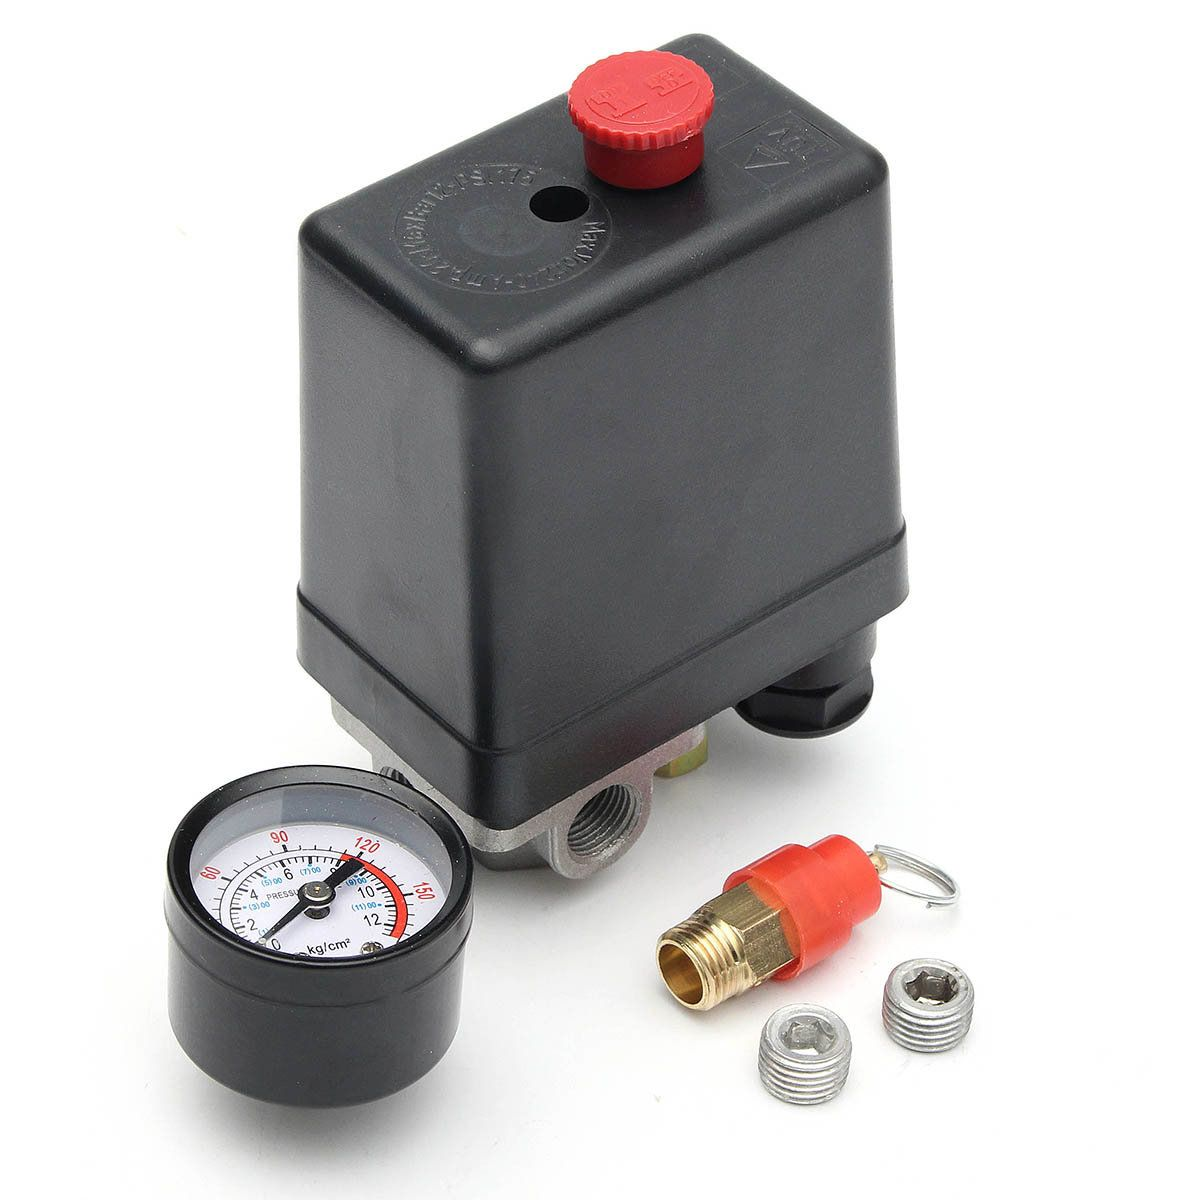 220v 14inch bsp 4 port single phase air compressor pressure switch 220v 14inch bsp 4 port single phase air compressor pressure switch with safety valve publicscrutiny Gallery